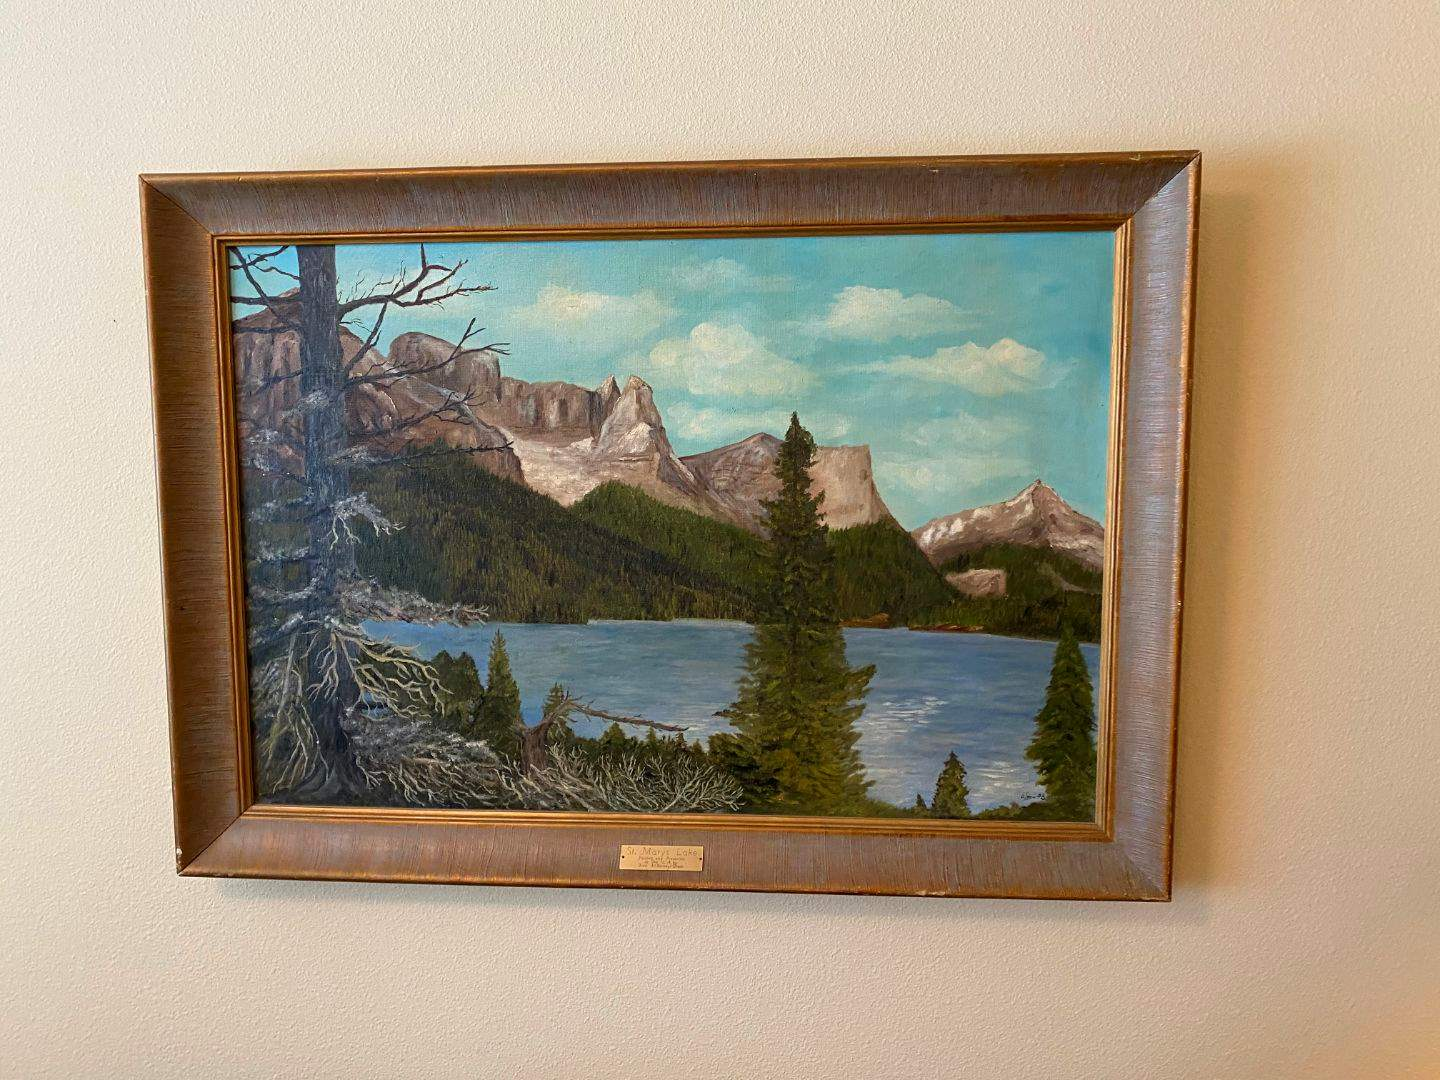 """Lot # 144 - Original Oil on Canvas by Fred A. Olson """"St. Mary's Lake"""" - 41"""" x 29"""" (main image)"""